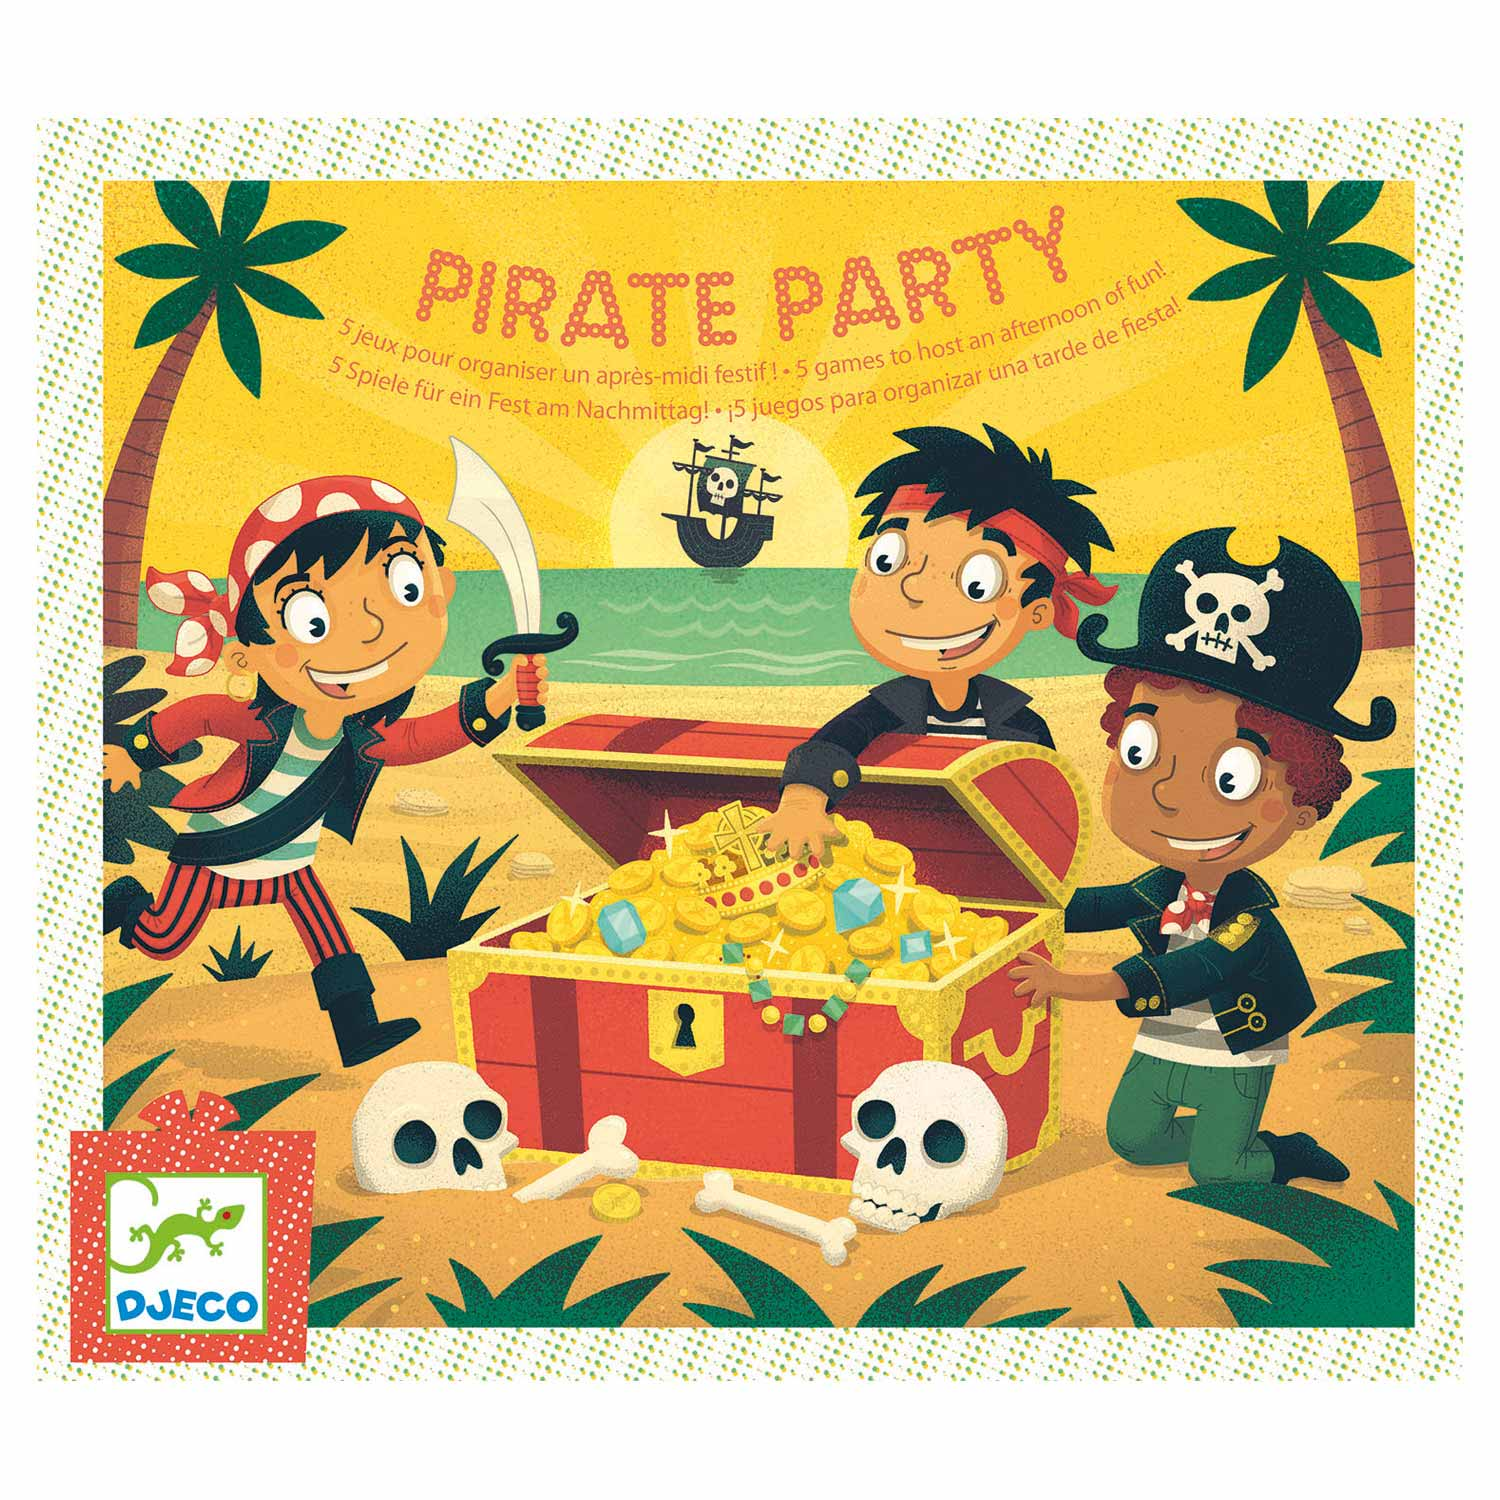 Djeco Piratenfeest Spellen, 5in1